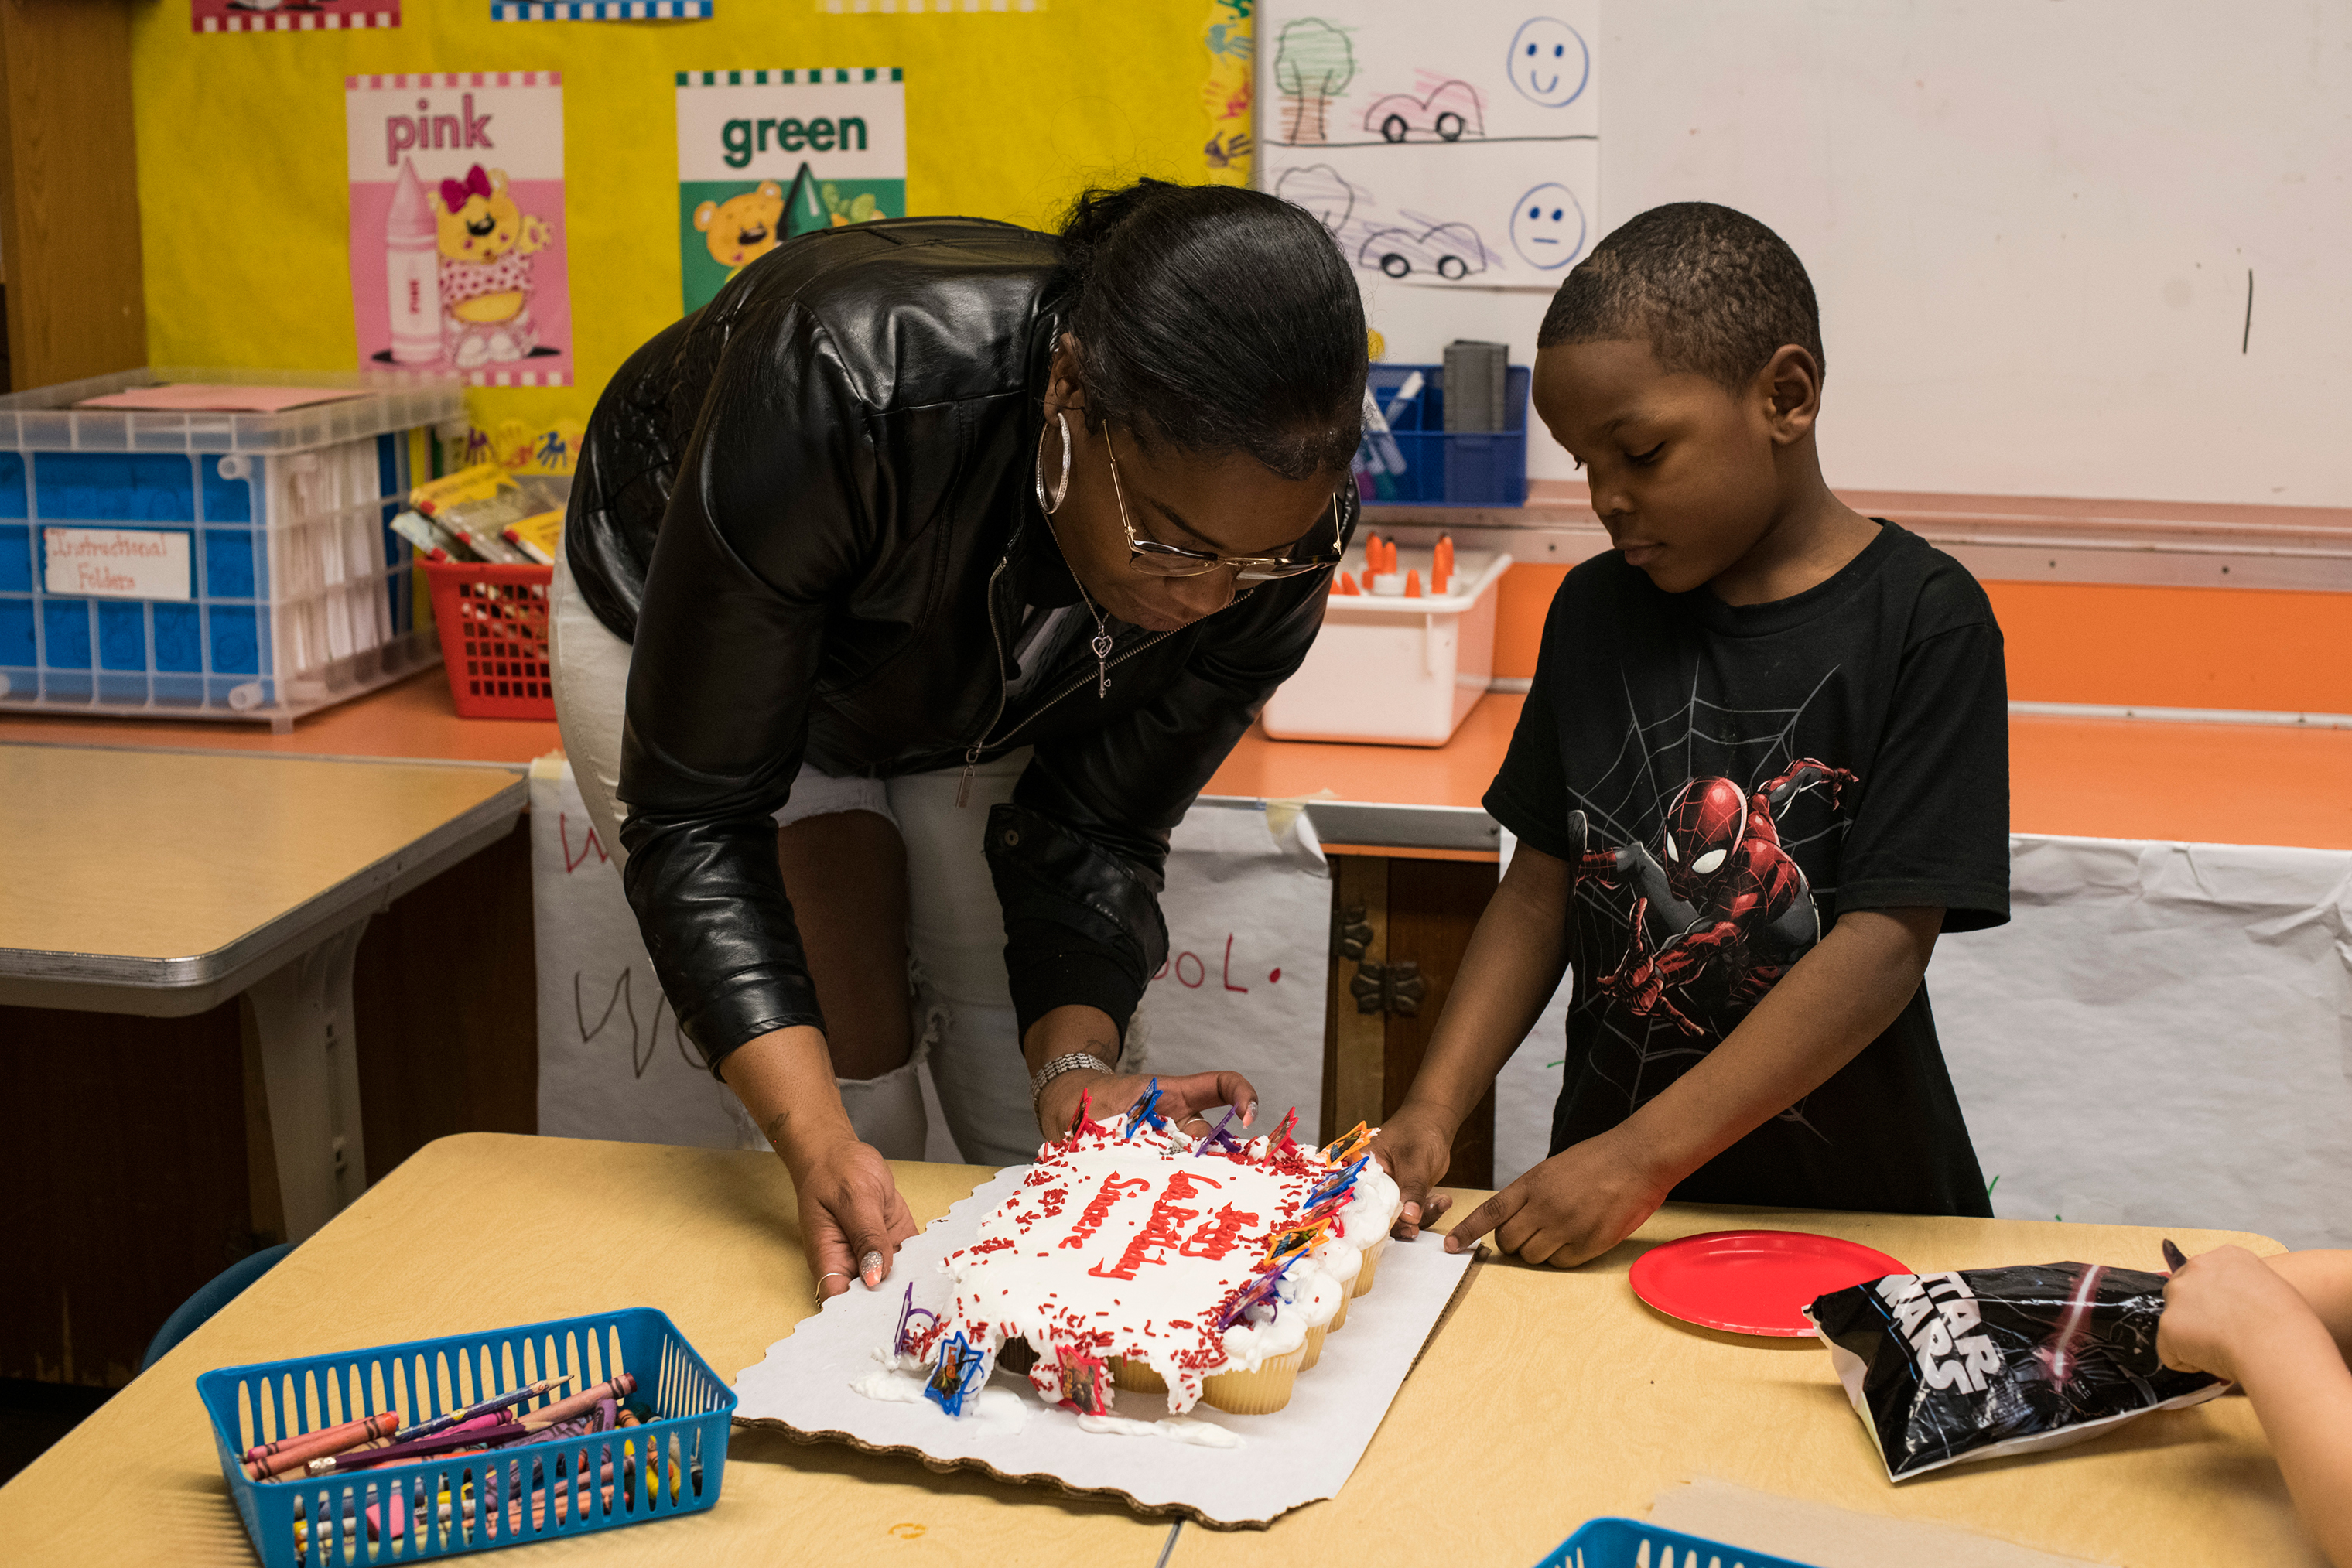 Sincere helps distribute the cupcakes that Hawk brought him and his kindergarten classmates during snack time on Feb. 4.